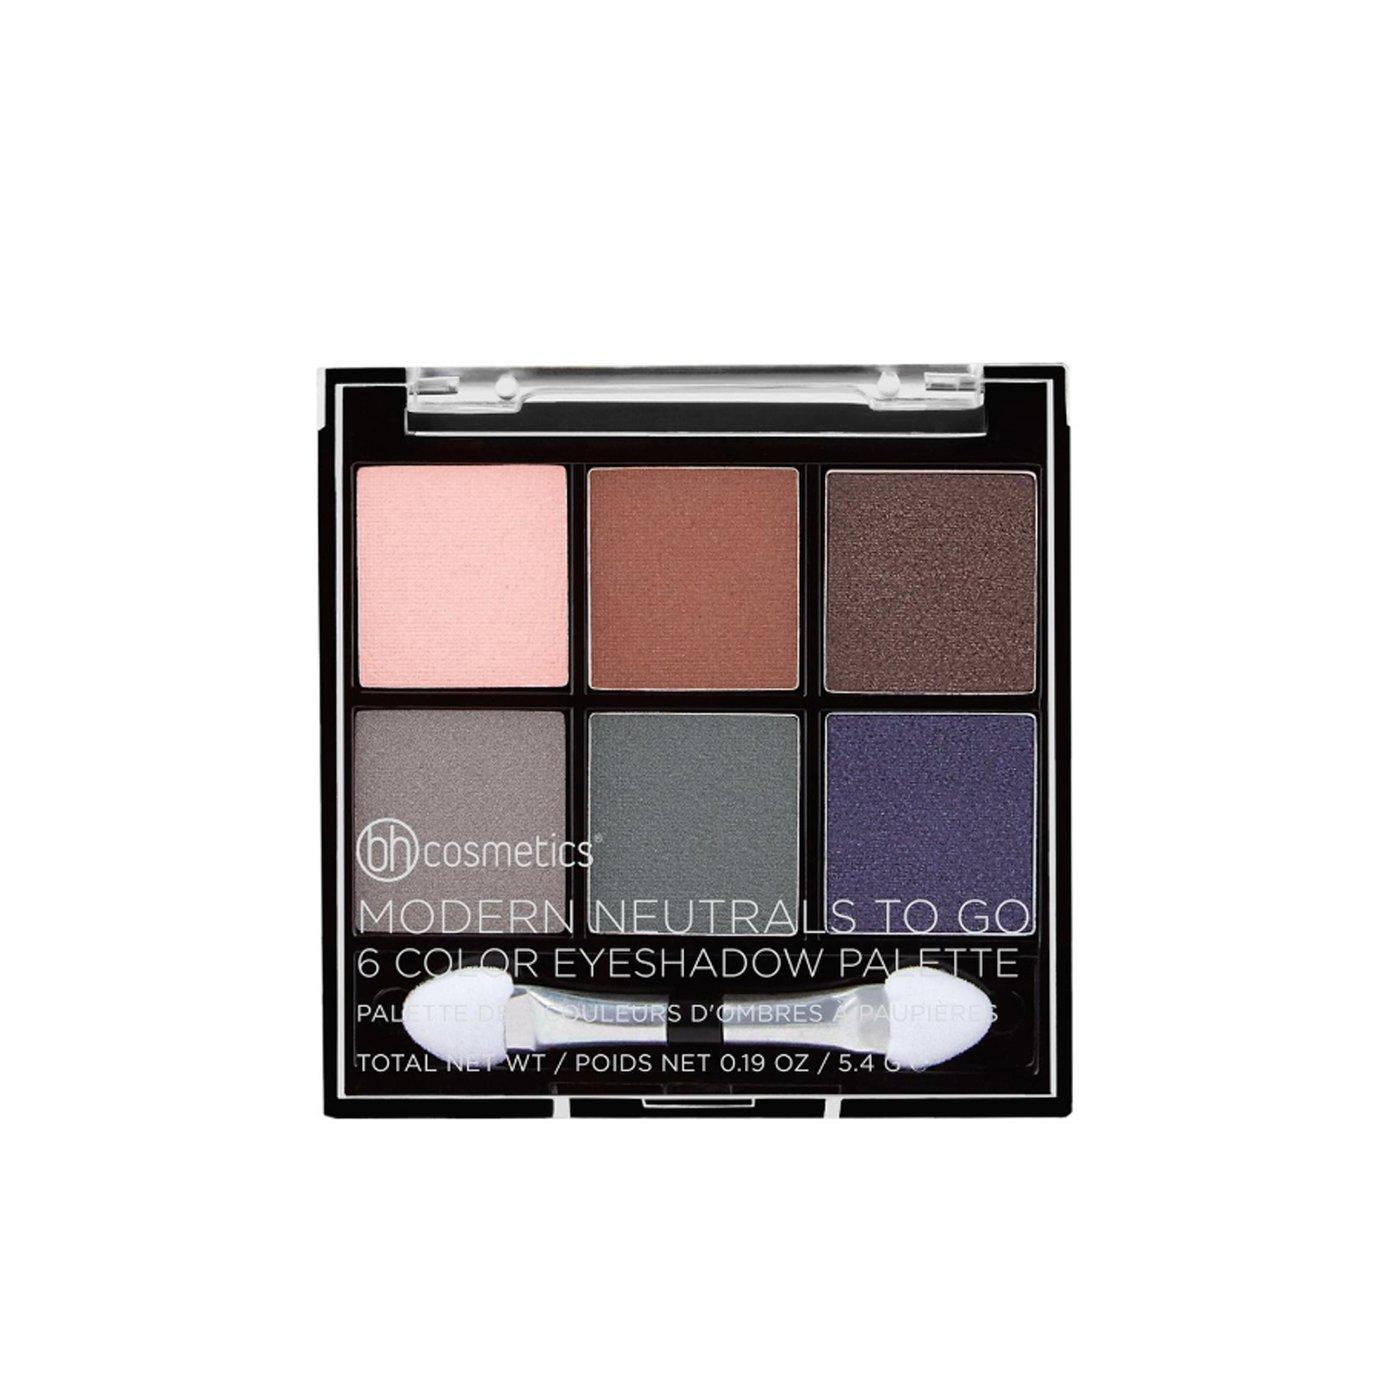 BH Cosmetics 6 Color Eyeshadow Palette Modern Neutrals To Go